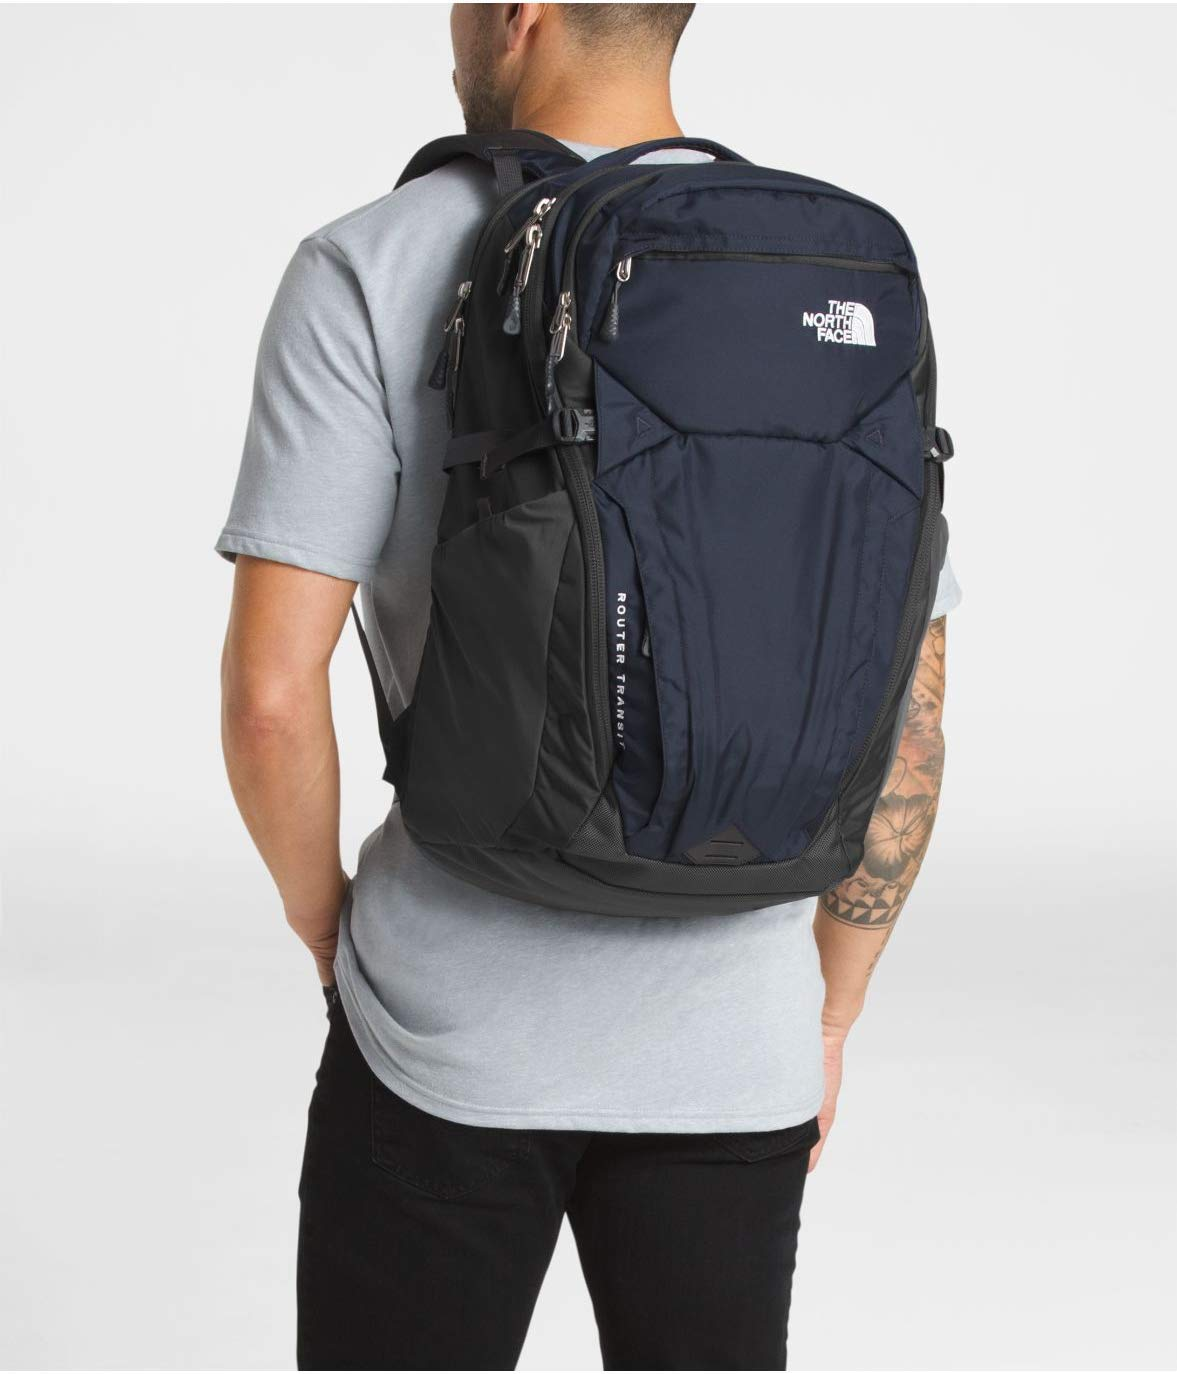 new product meet limited guantity The North Face Router Transit Backpack, NF0A3KXK, One Size ...